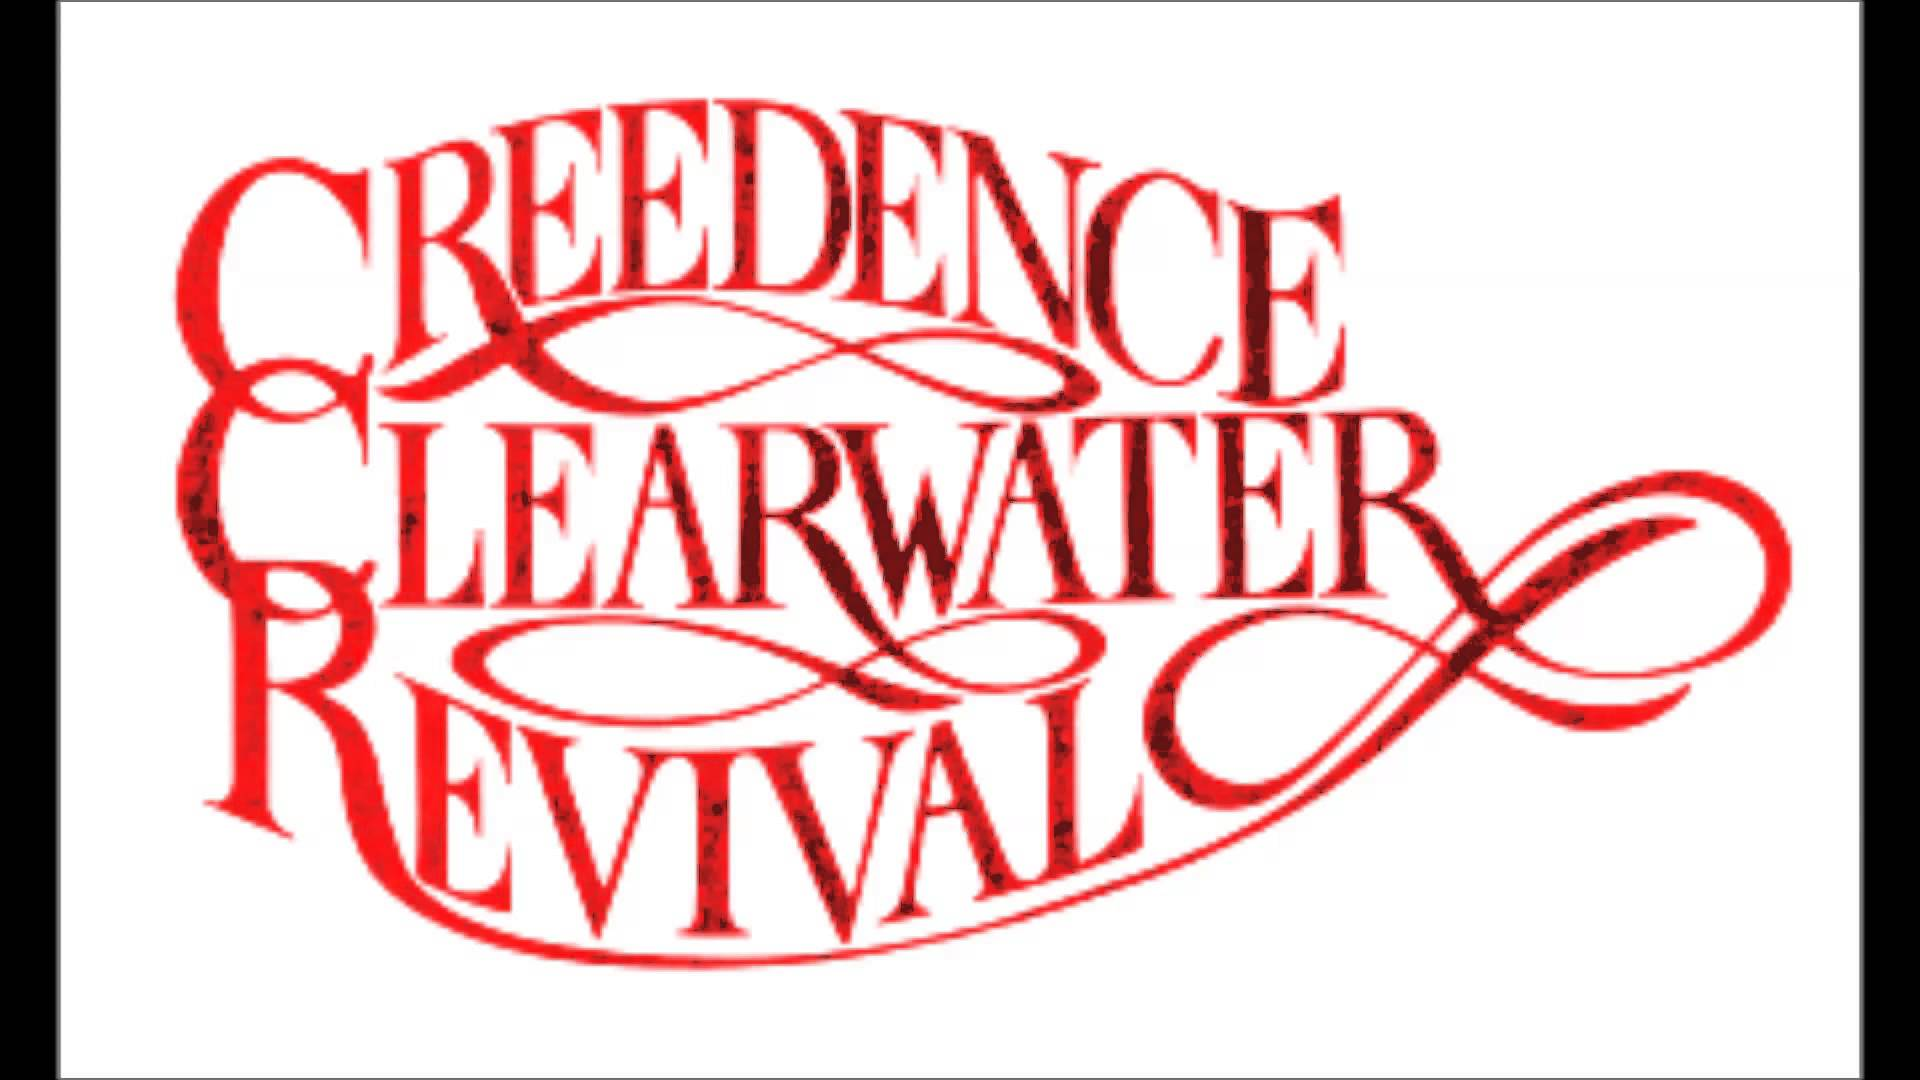 Creedence Clearwater Revival Wallpapers and Background Images 1920x1080